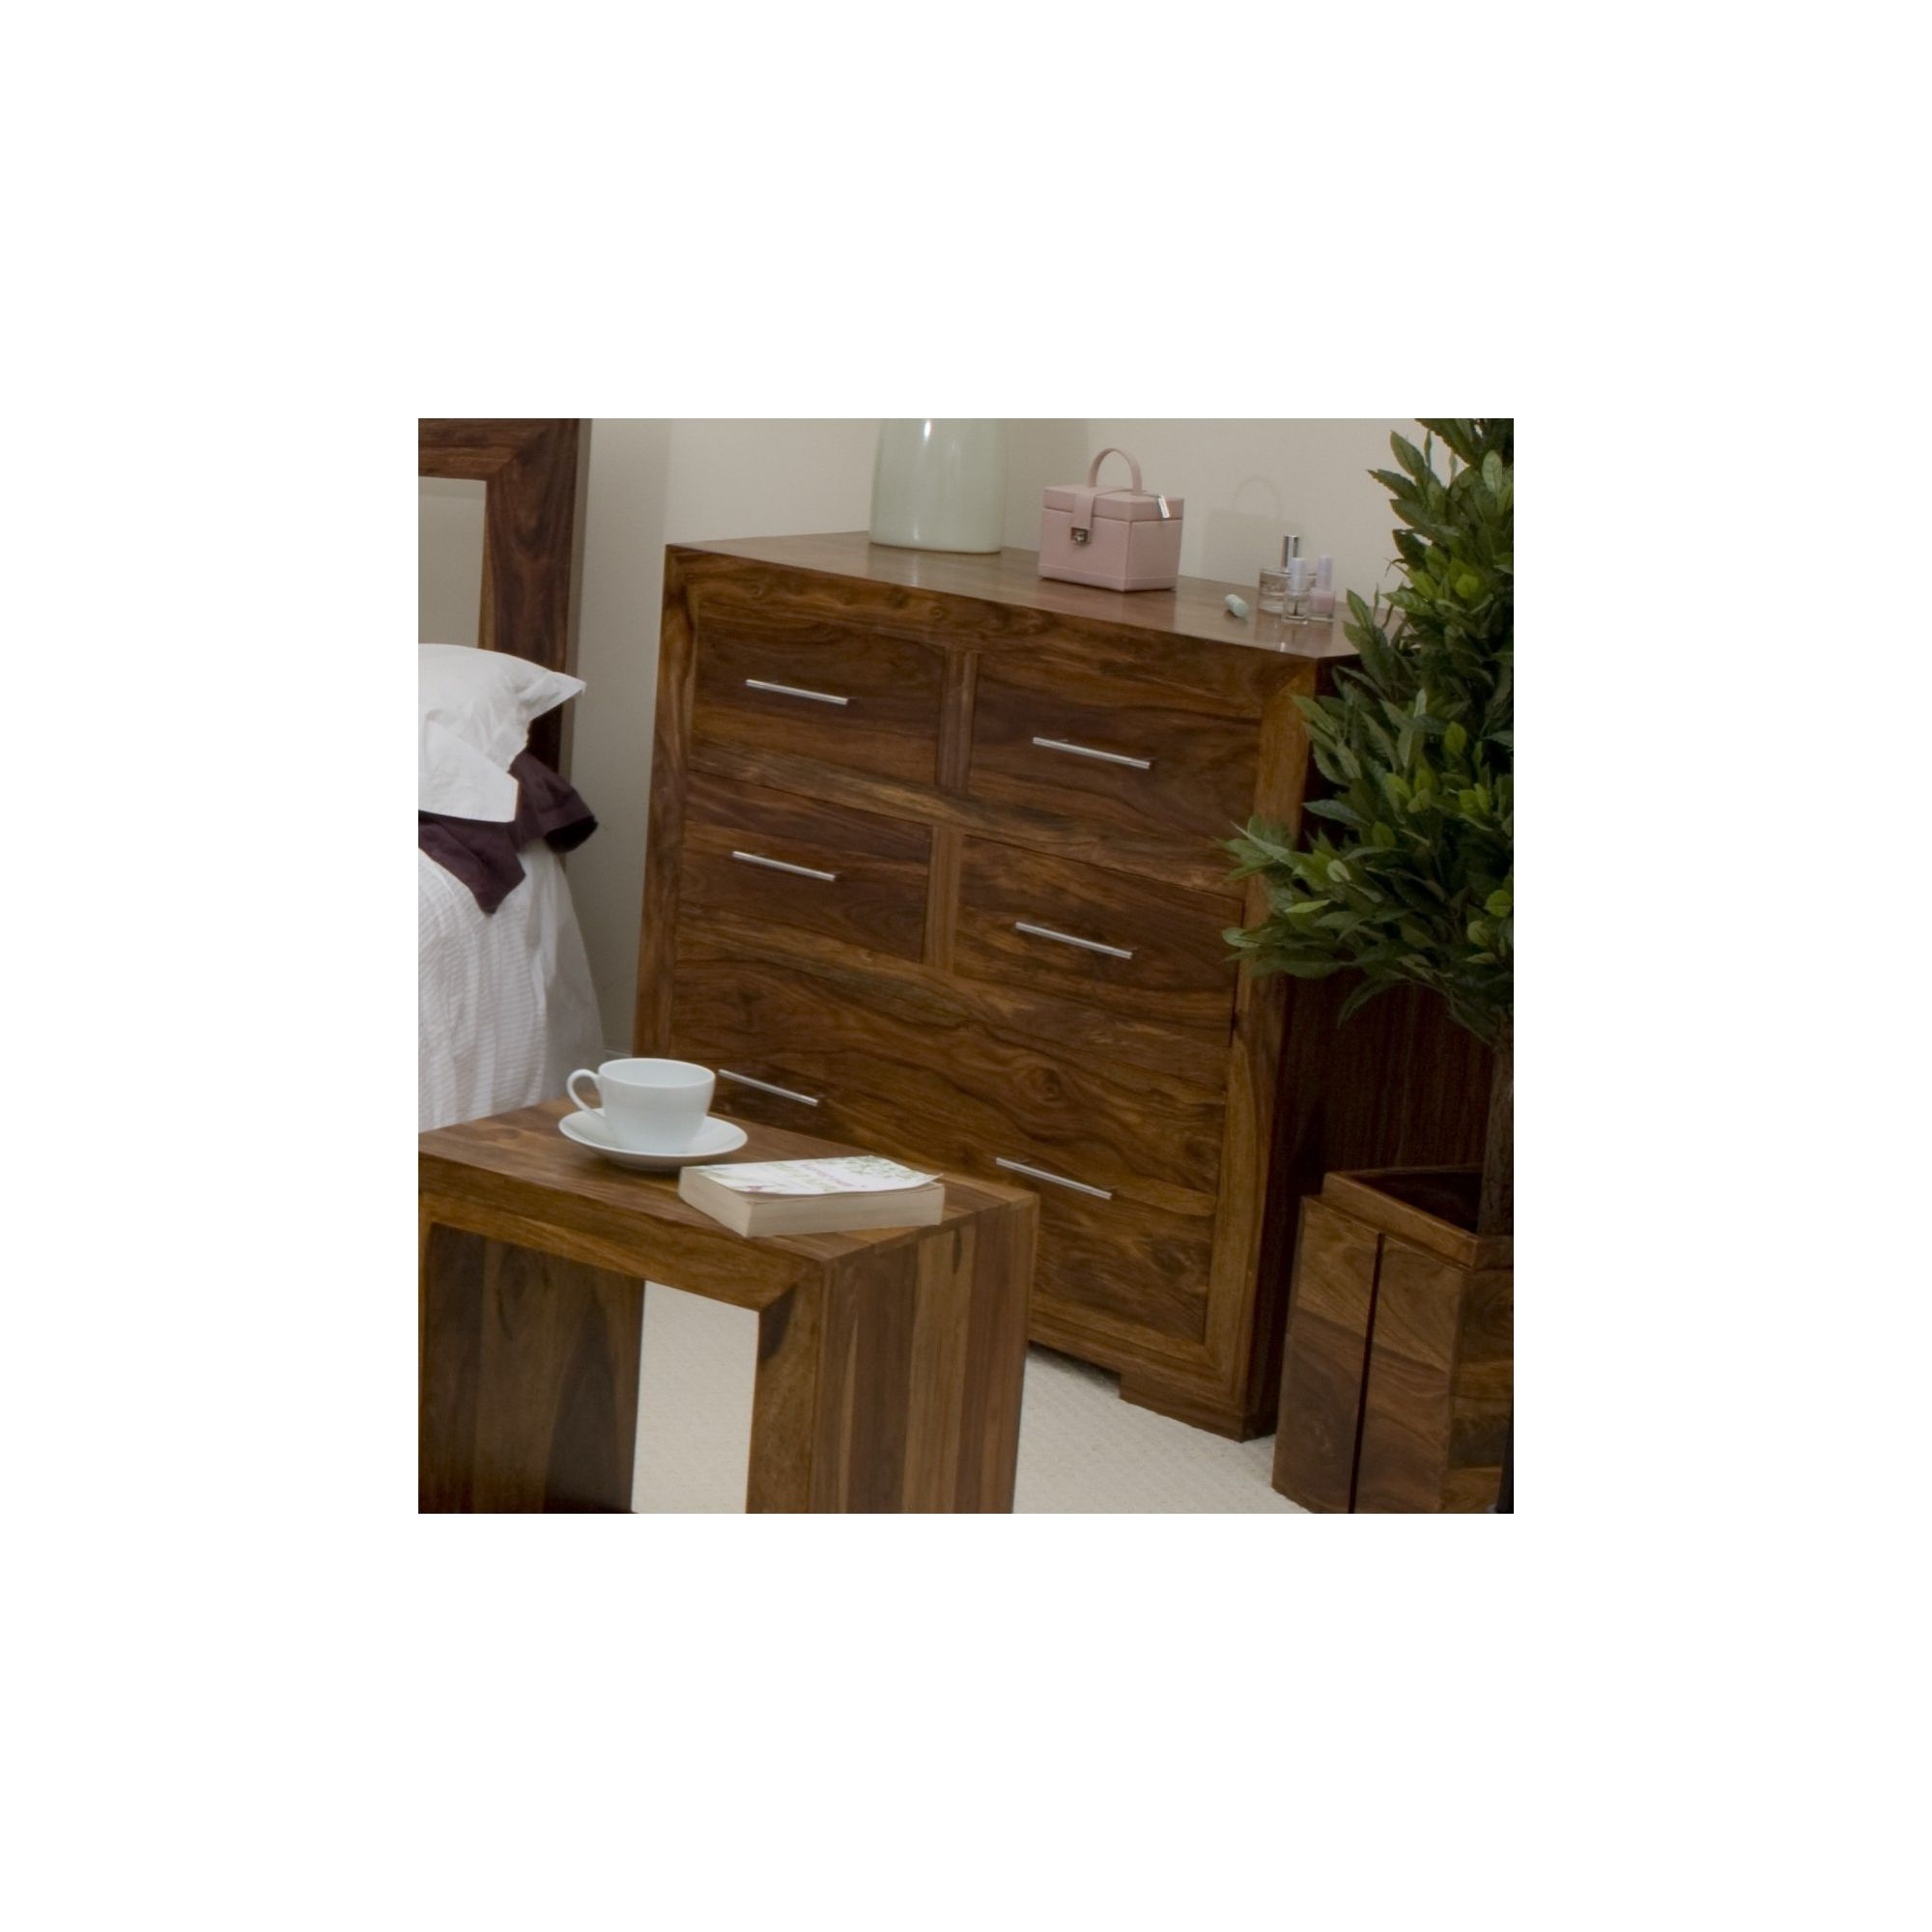 Elements Cubex Bedroom 4-Over-1 Drawer Chest in Warm Lacquer at Tesco Direct